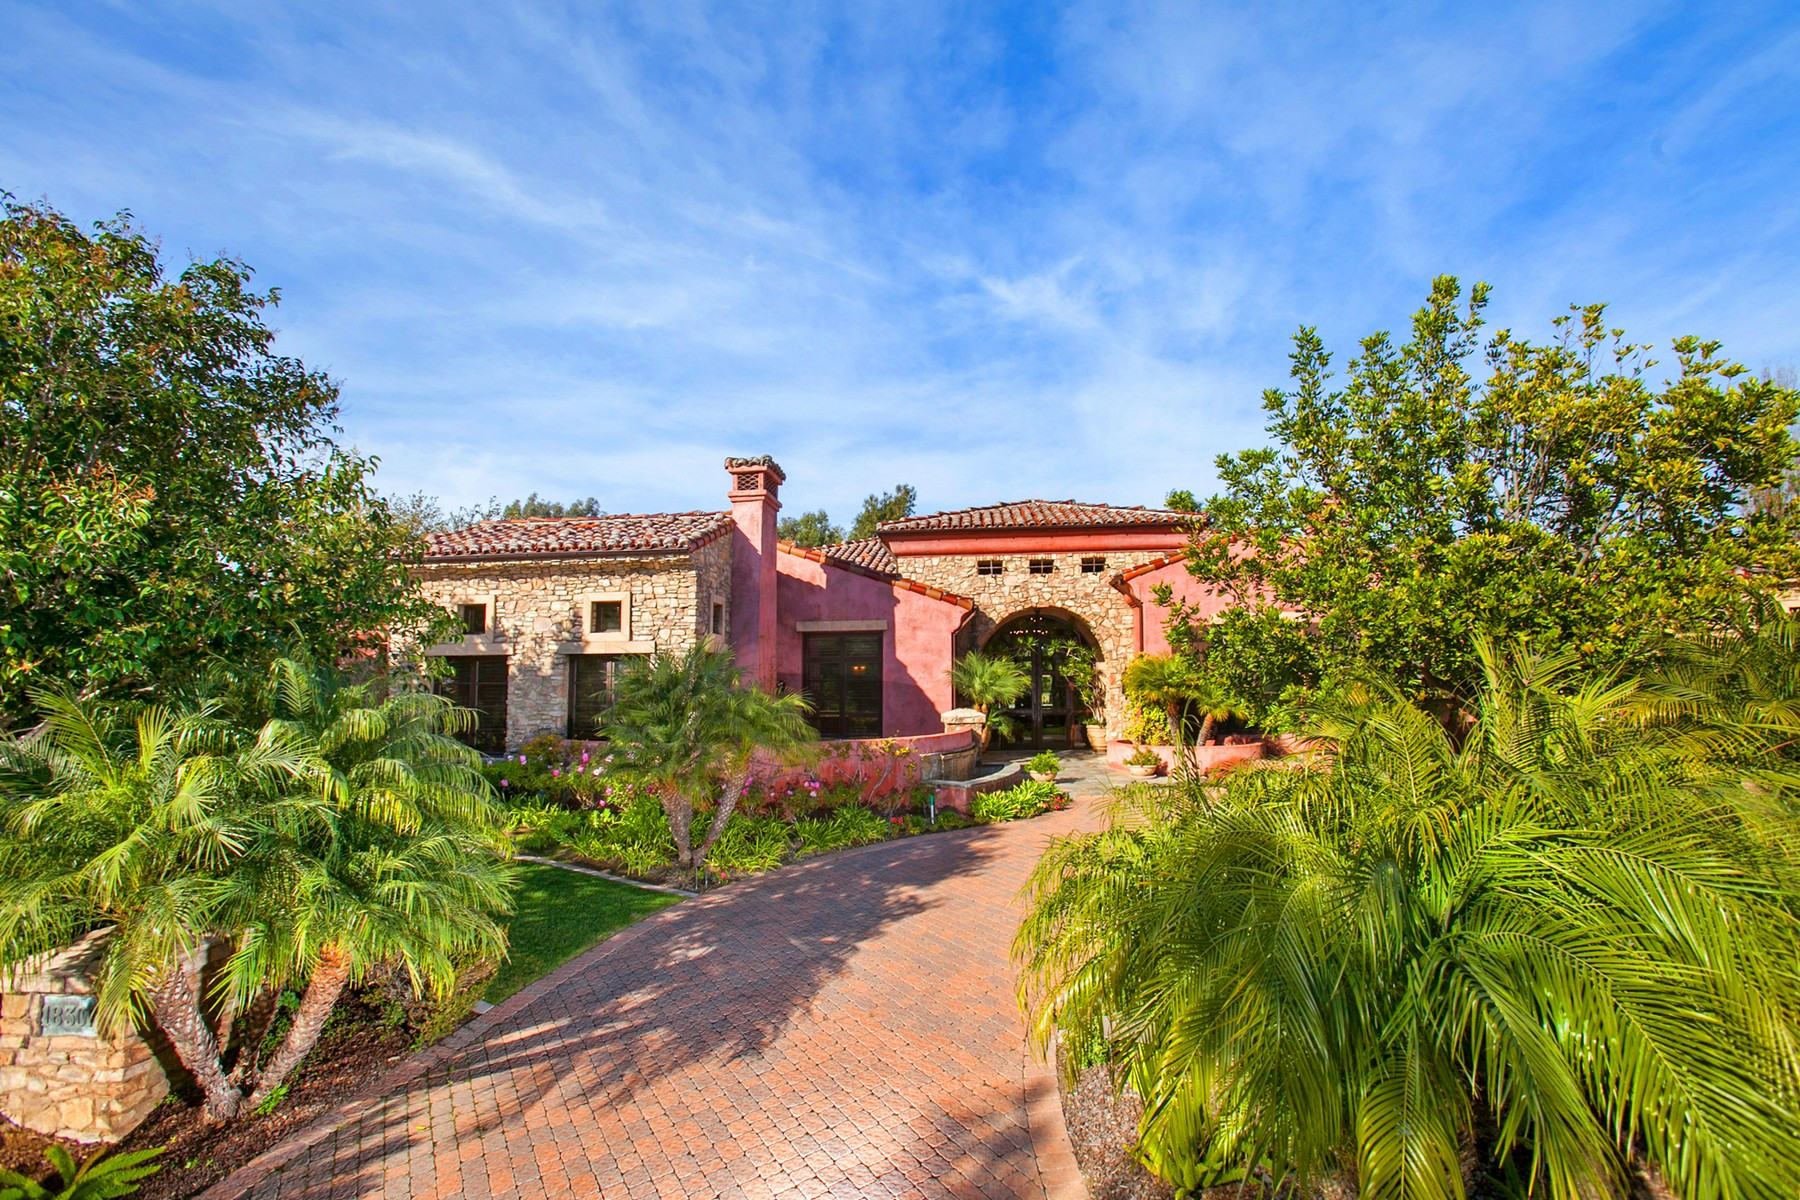 Additional photo for property listing at 18307 Calle La Serra  Rancho Santa Fe, California 92067 United States